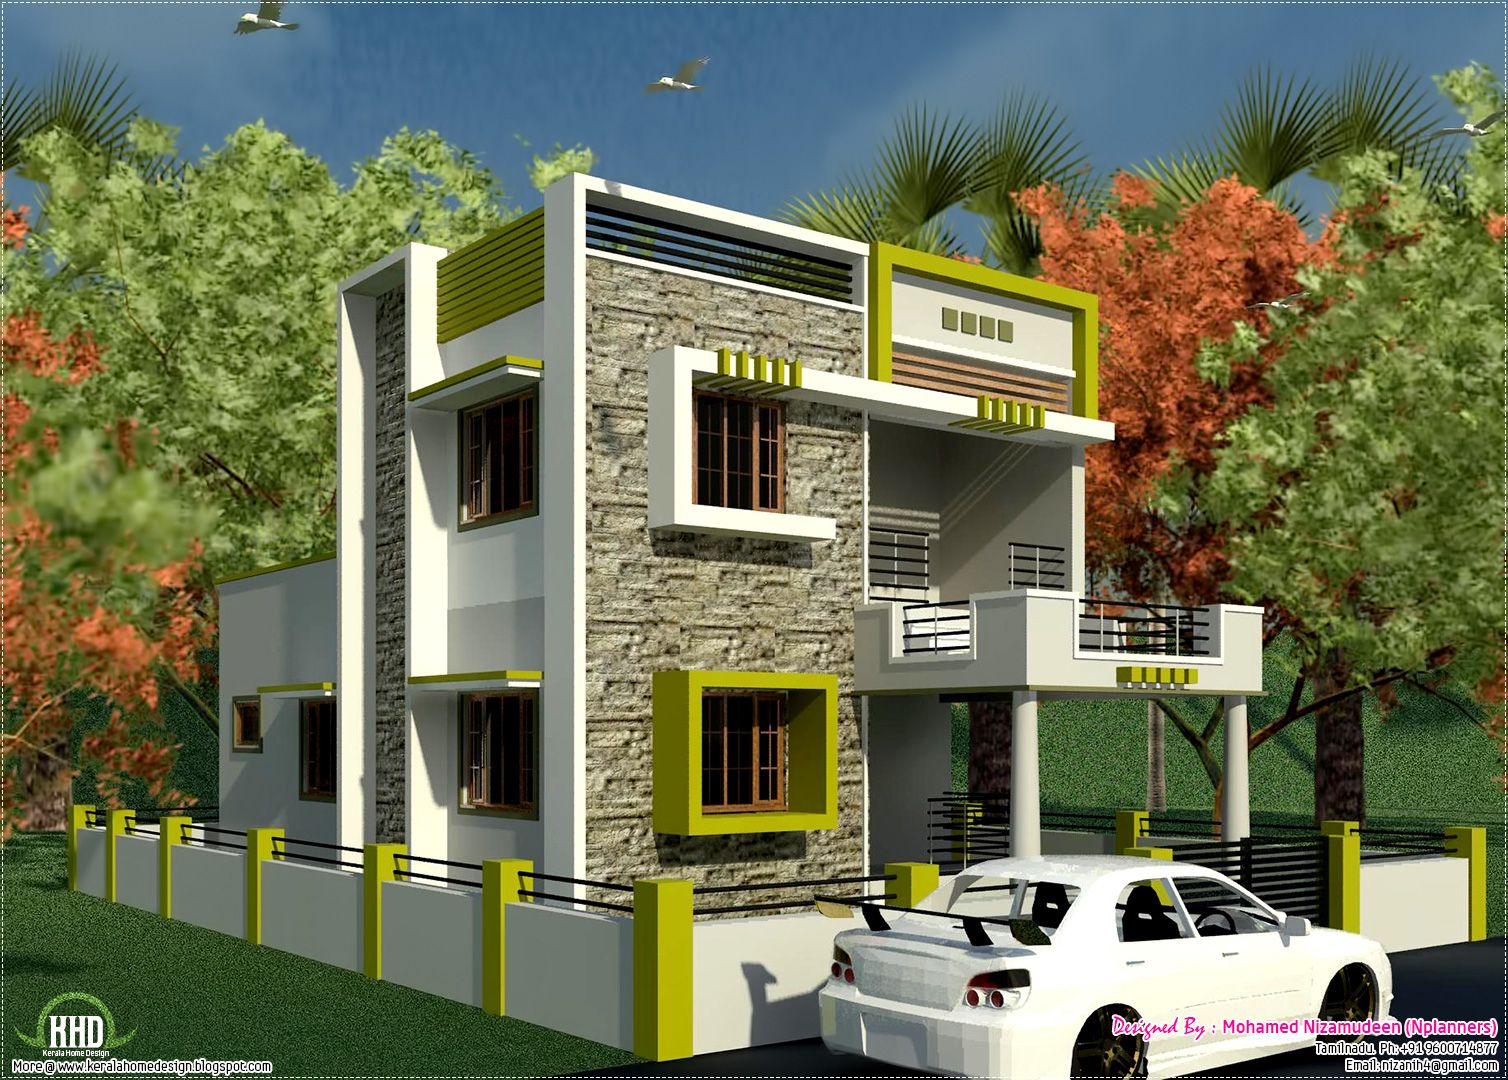 Small house with car park design tobfav com ideas for for House front design